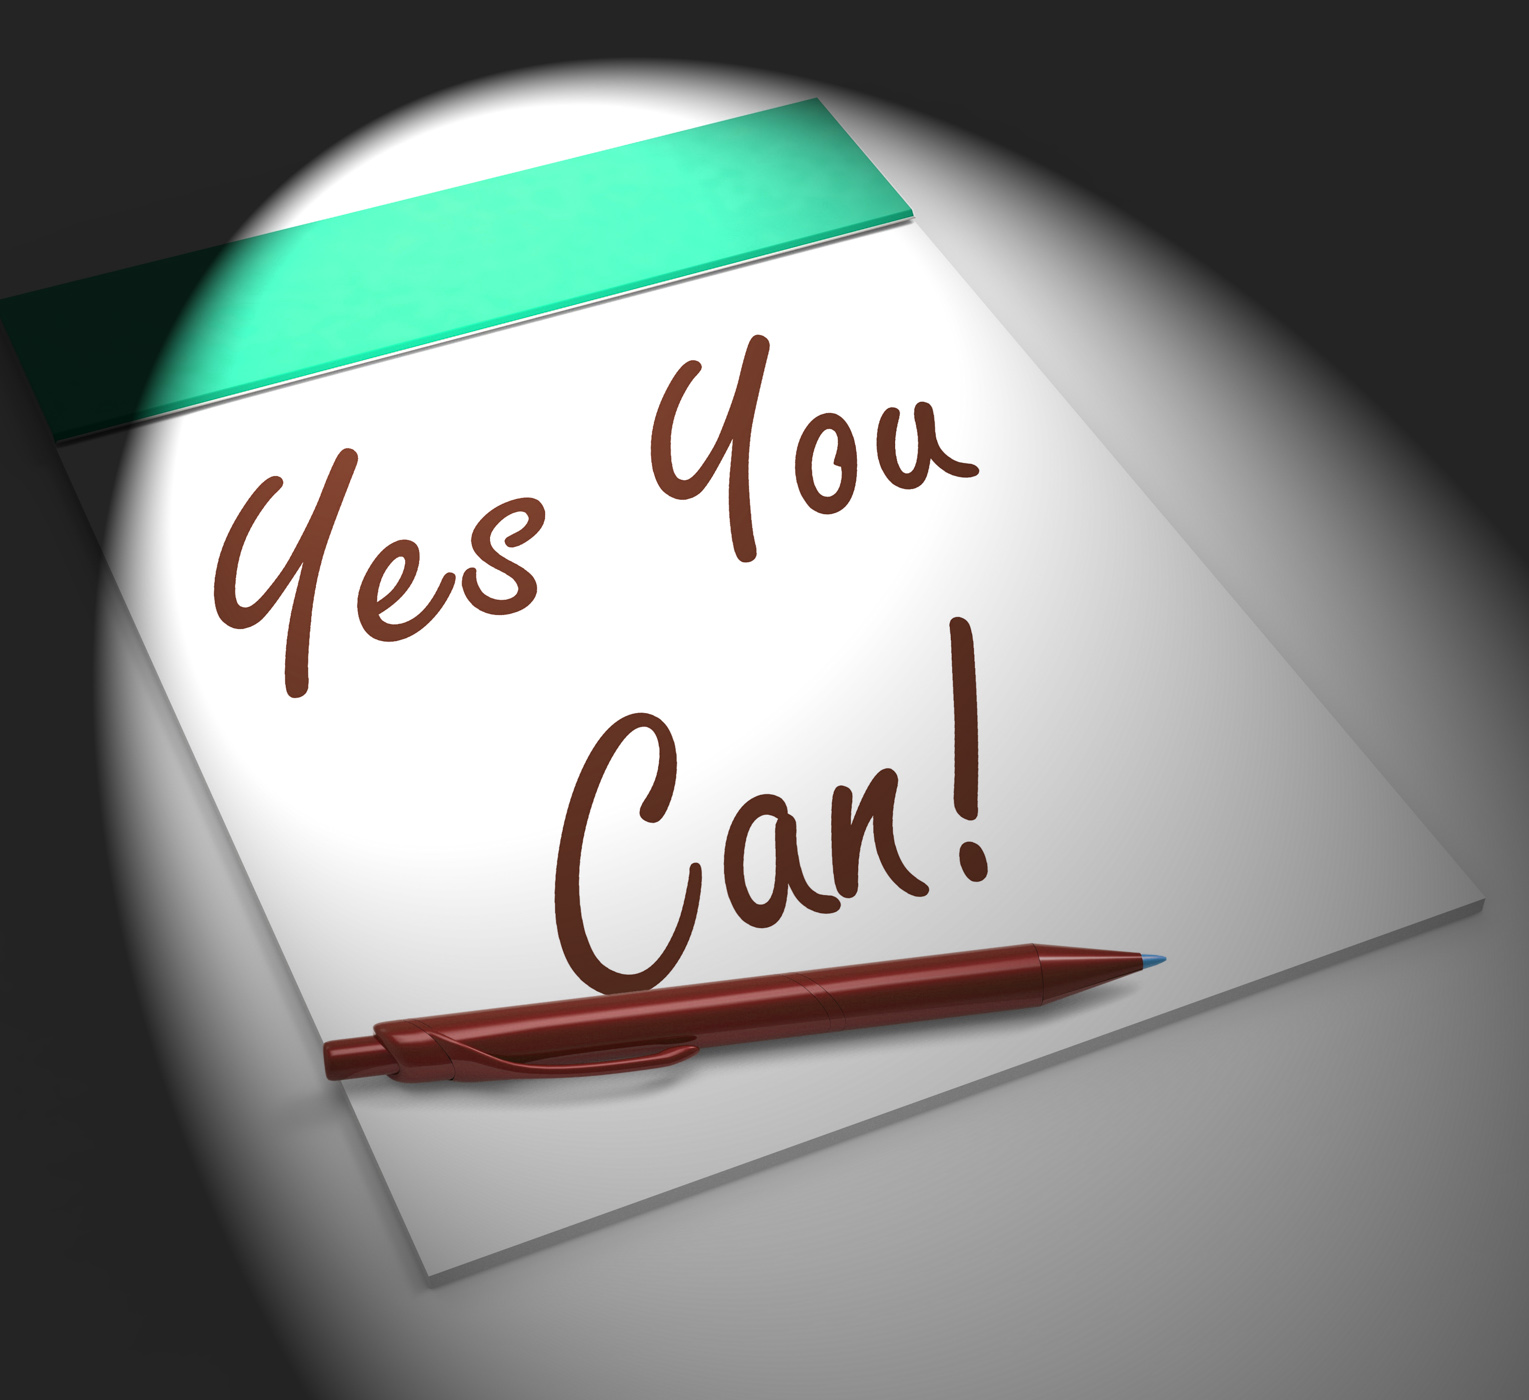 Yes you can! notebook displays positive incentive and persistence photo